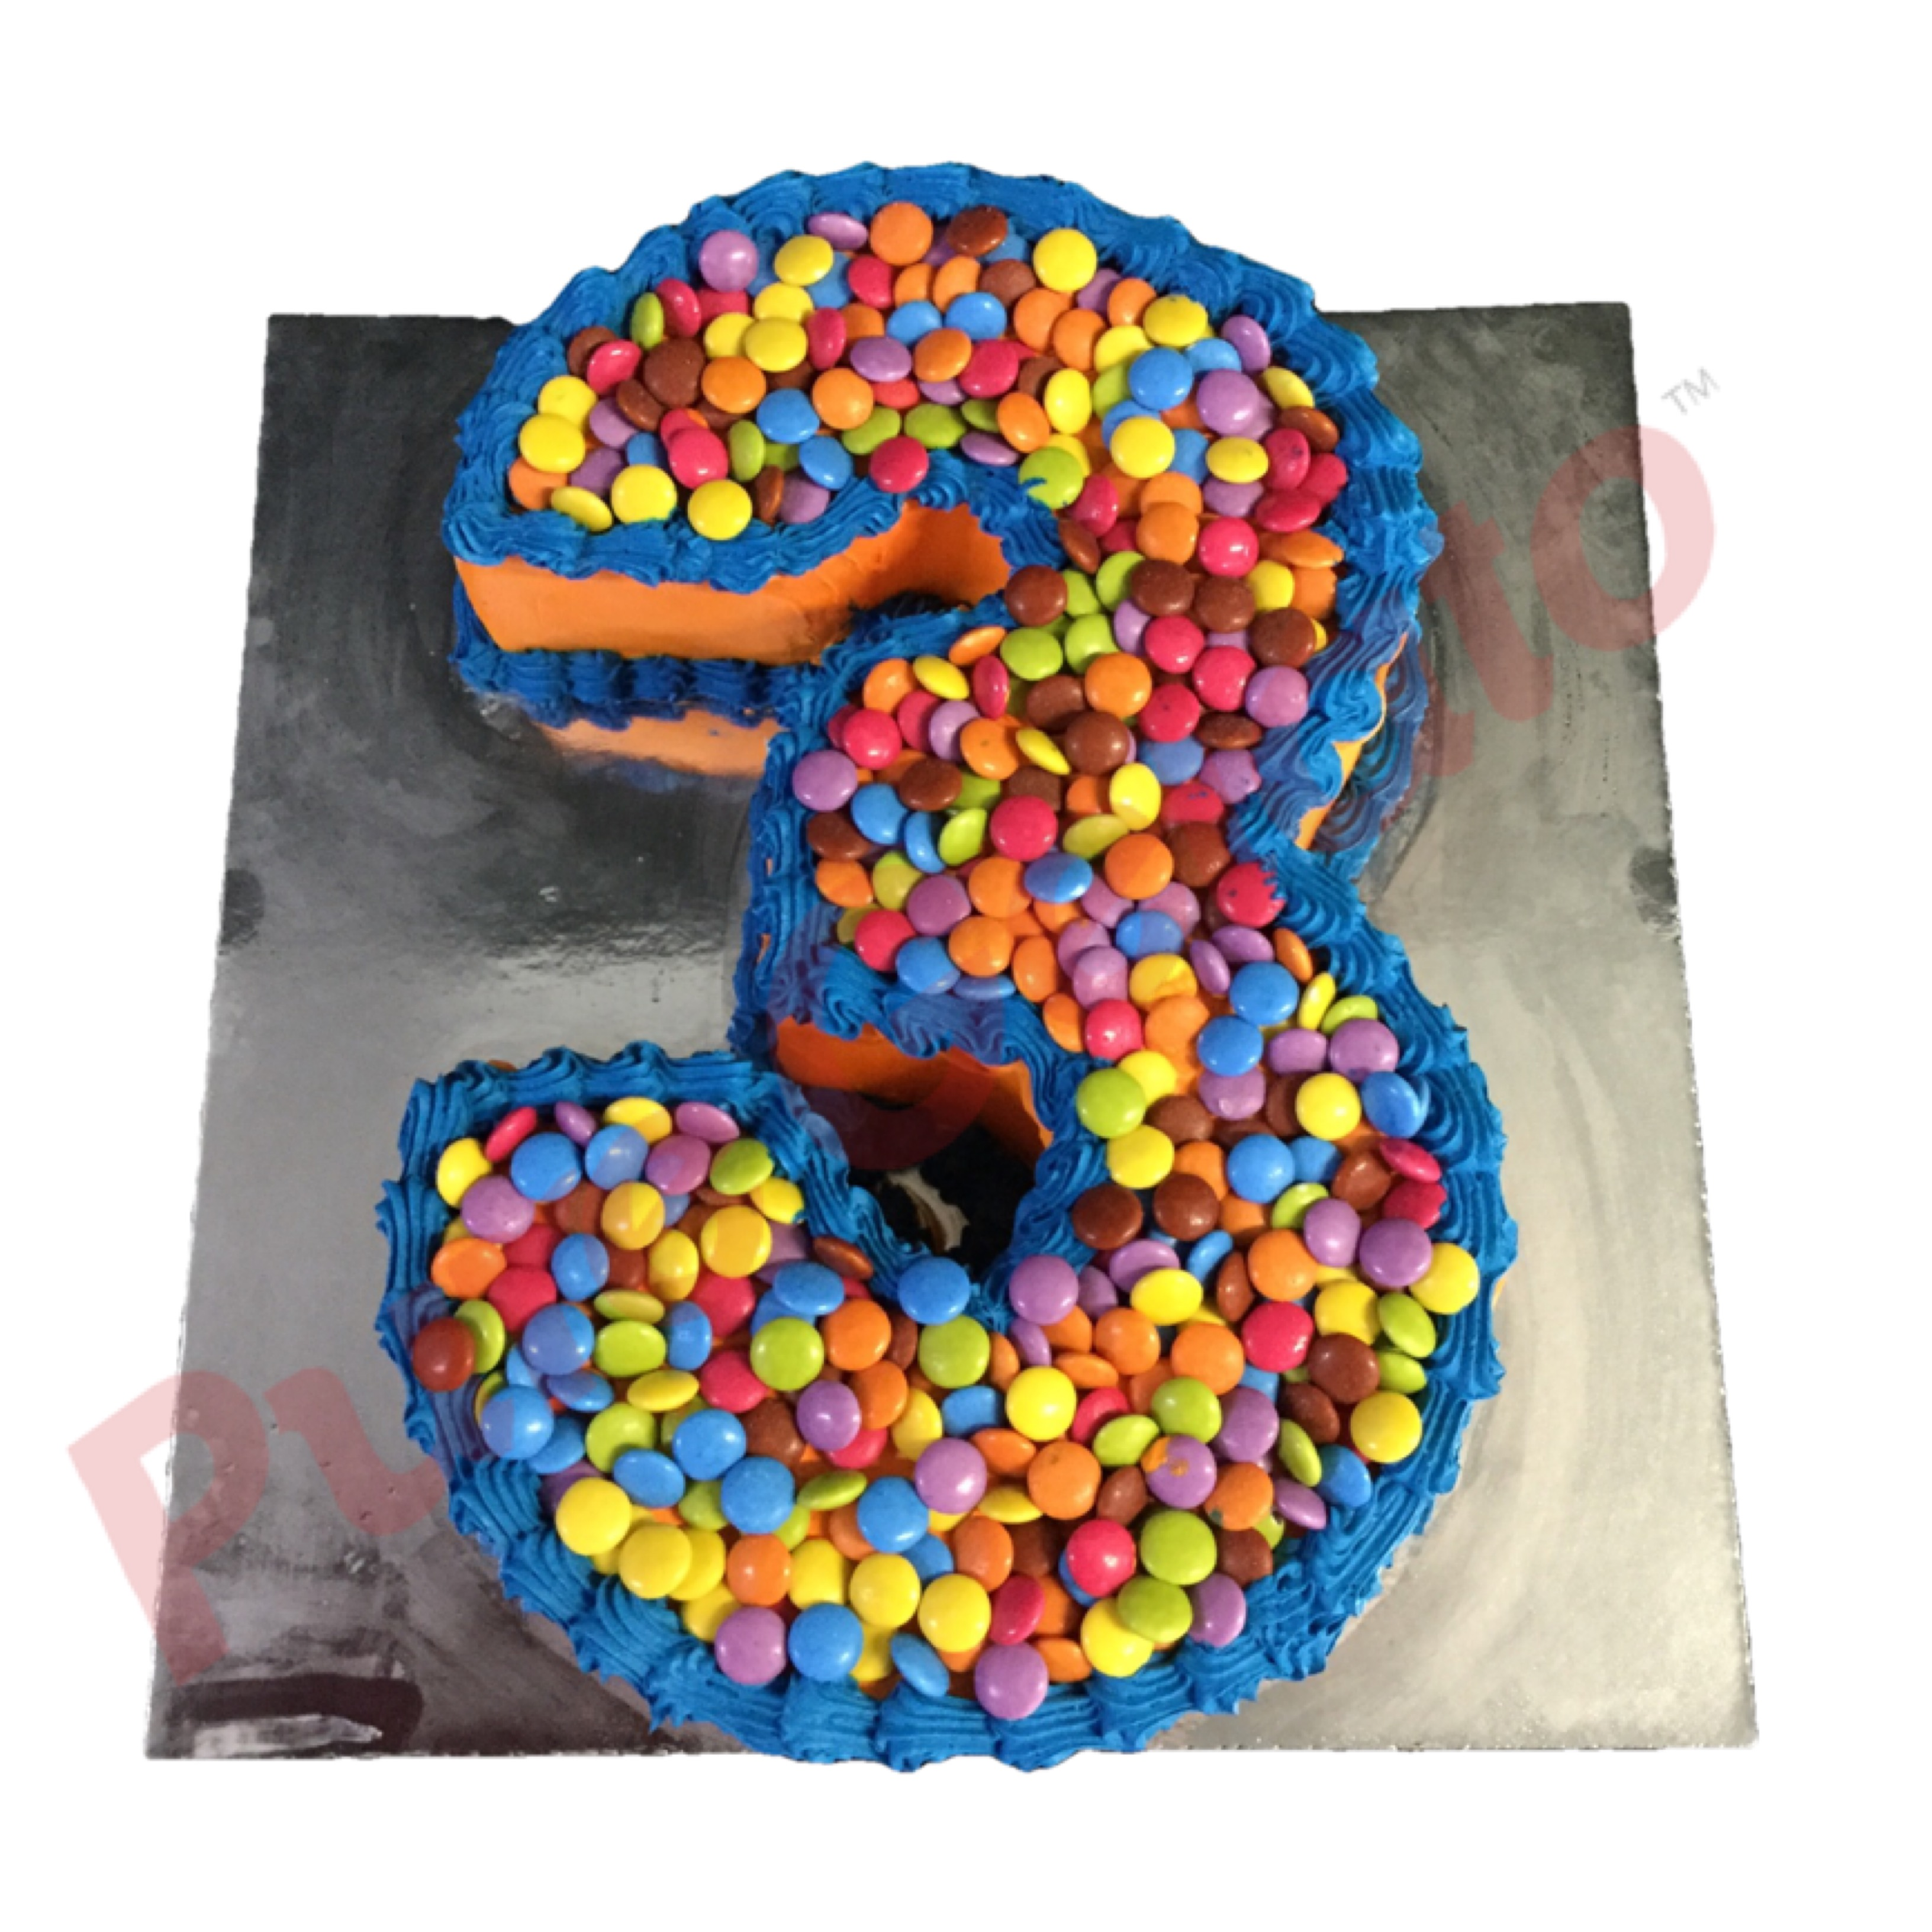 Numeral Cakes (Single)